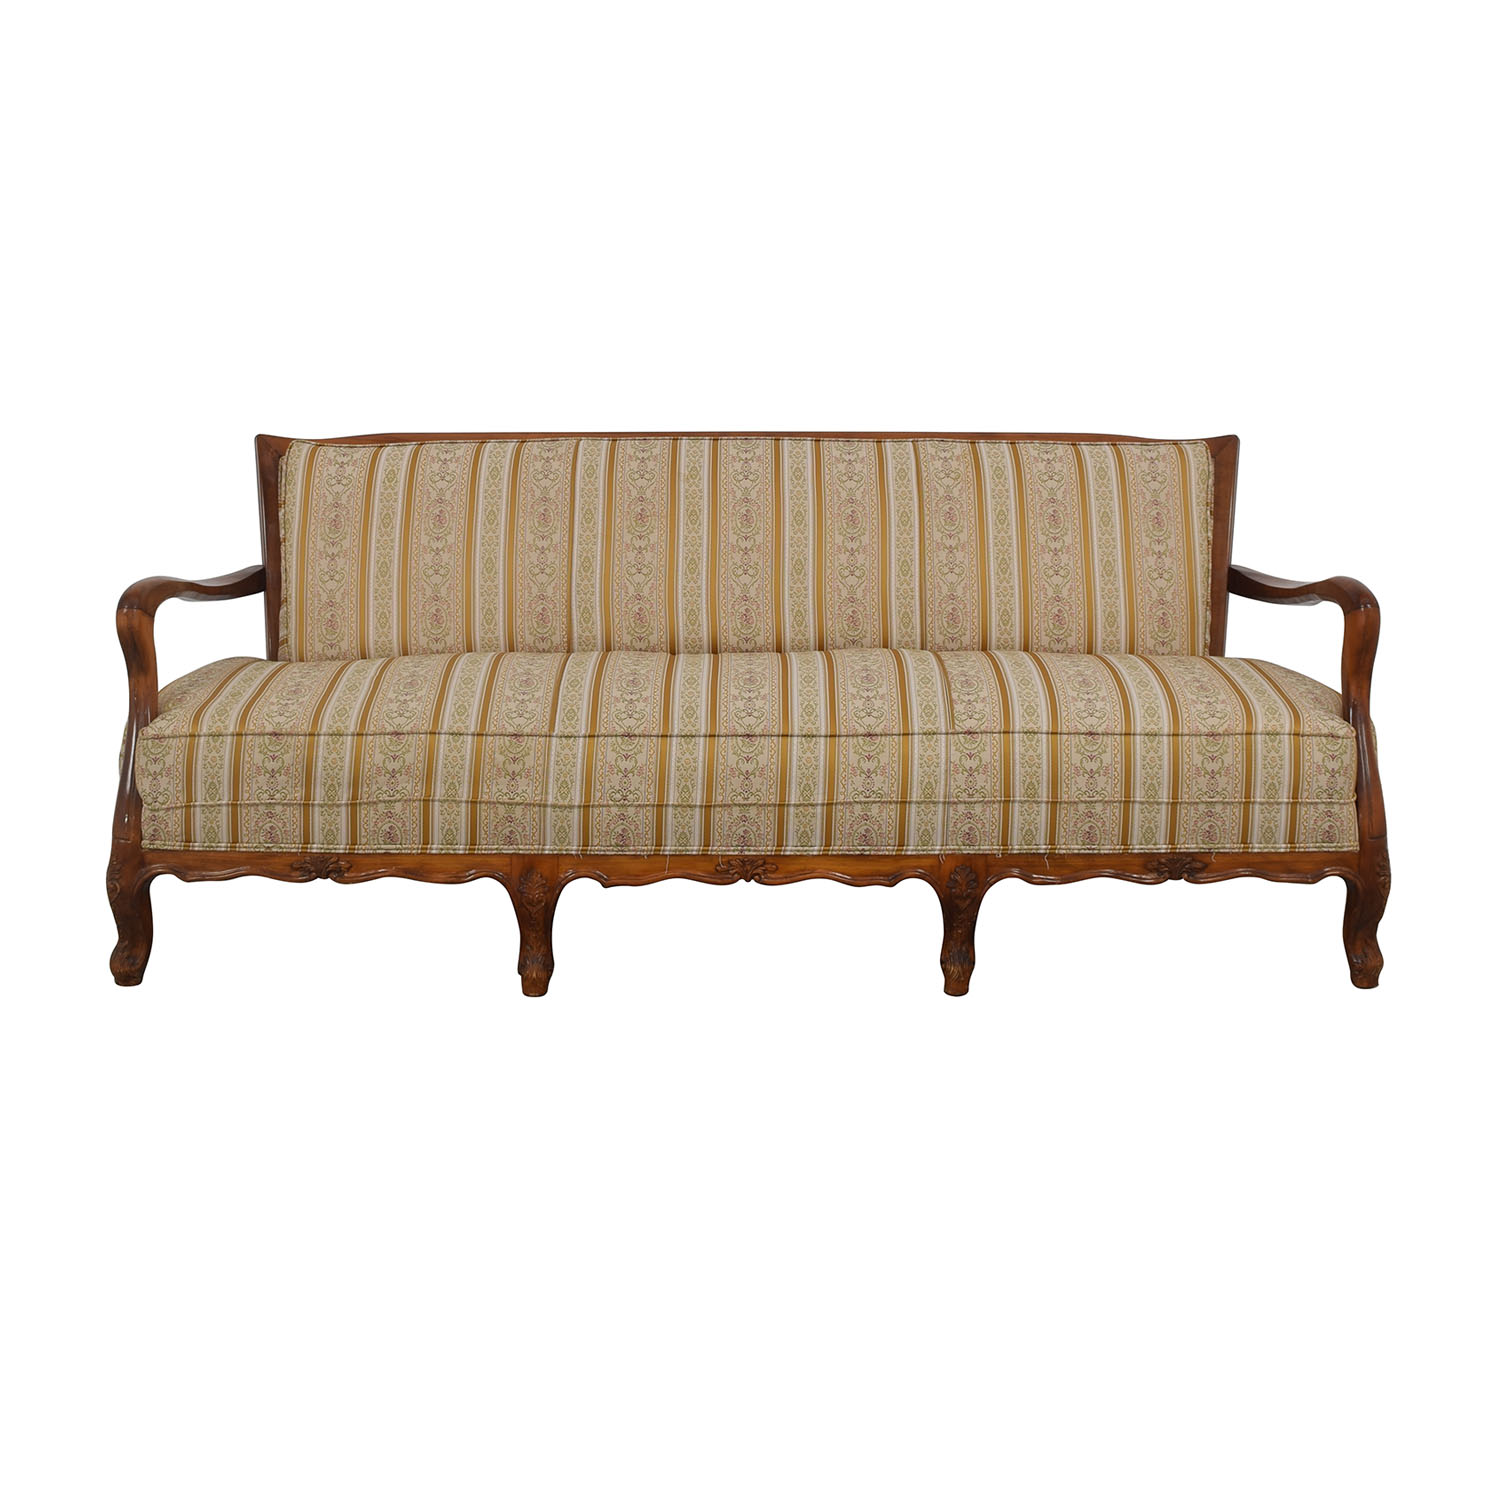 Sheraton Sheraton Cabriole Sofa on sale